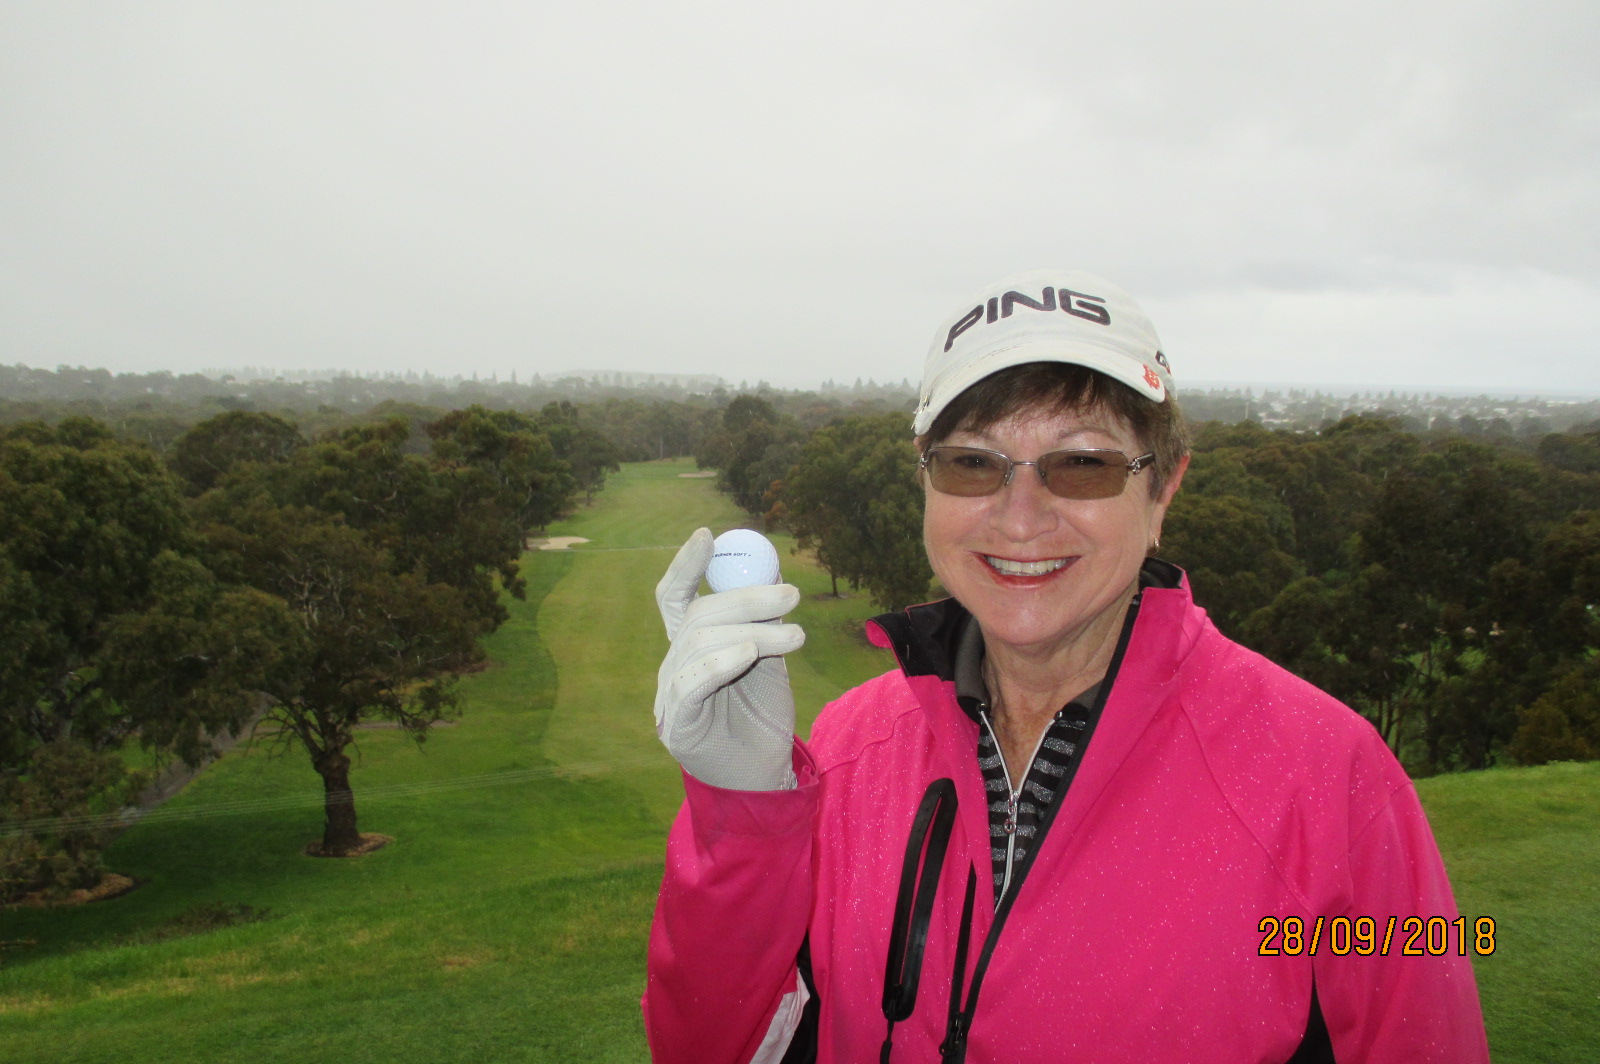 WATKINS, Joanne - Hole in One.JPG